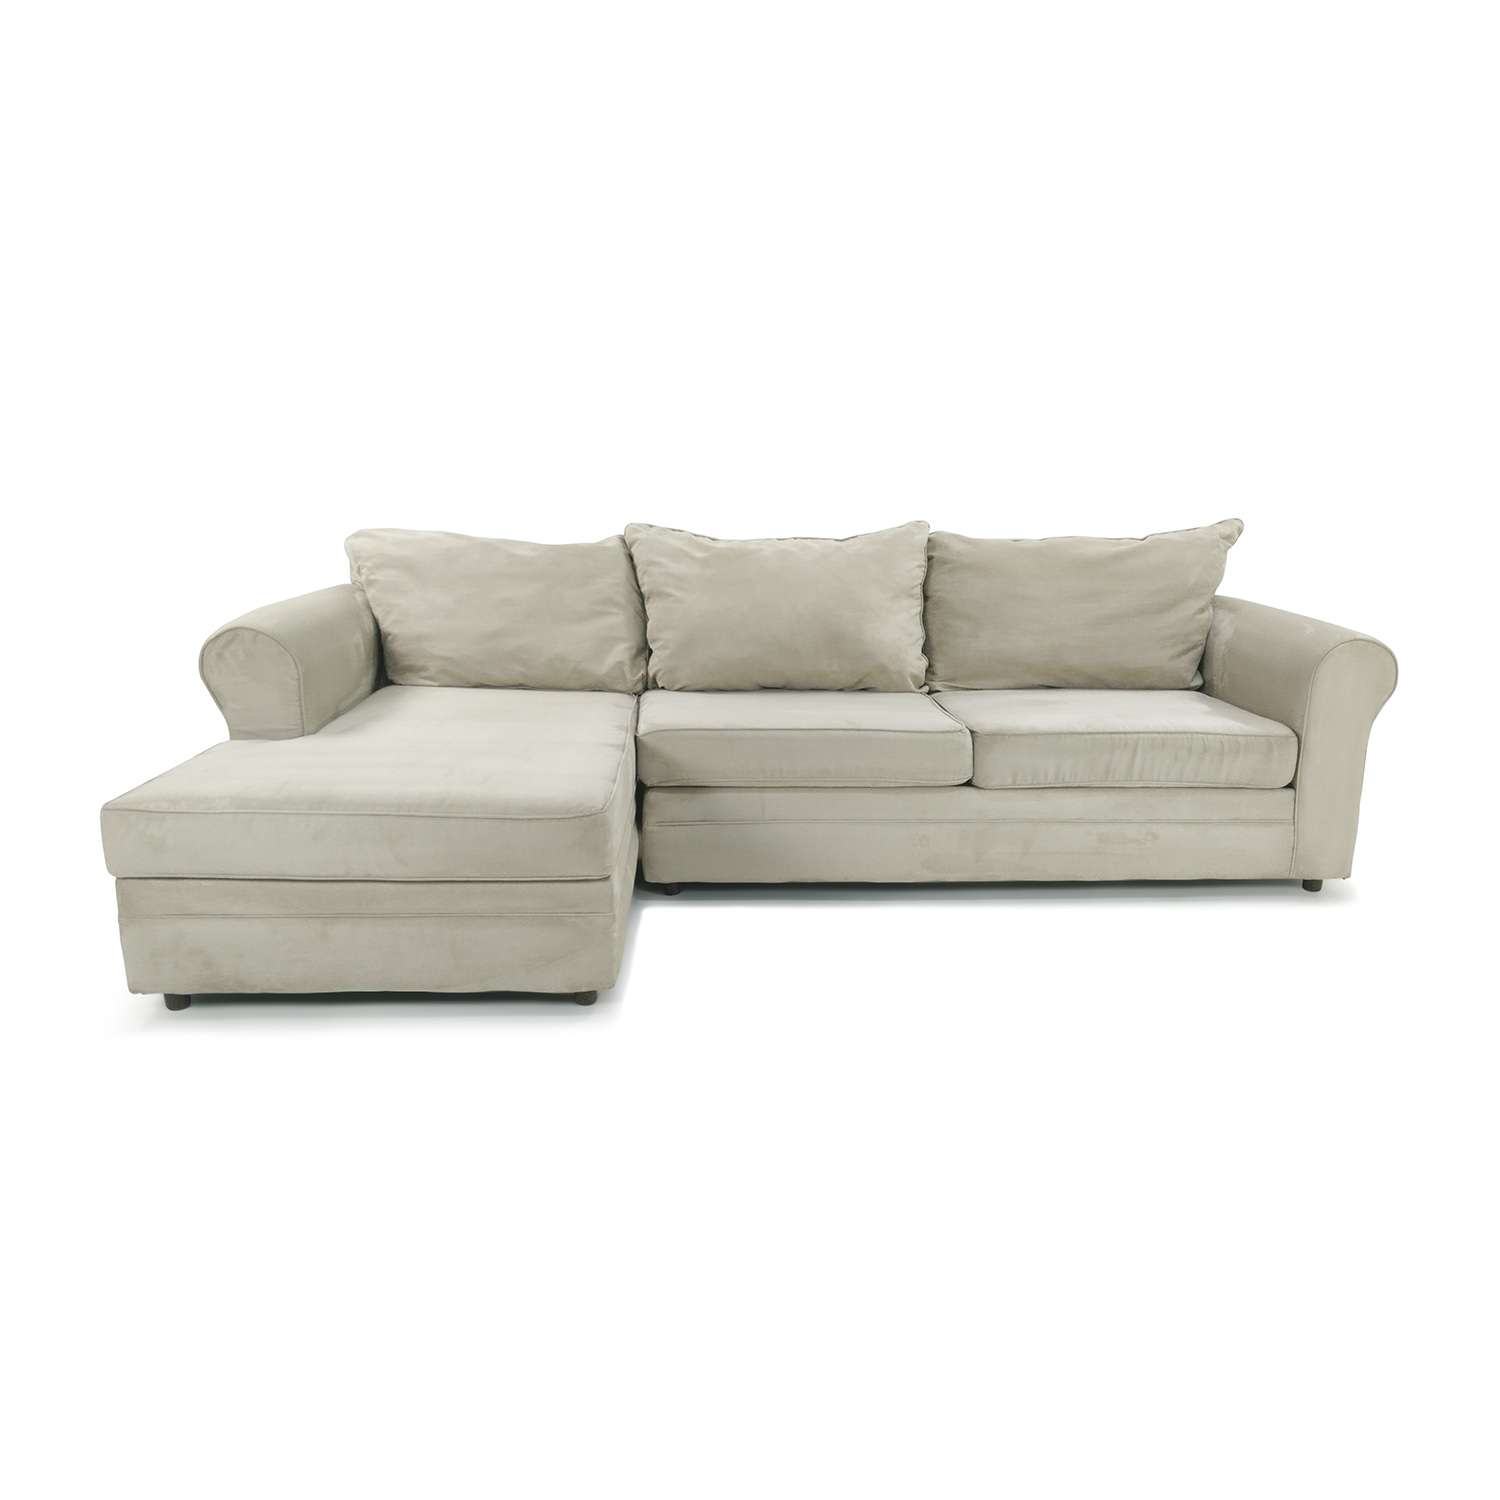 50% OFF - Bobs Furniture Venus 2 Piece Sectional / Sofas